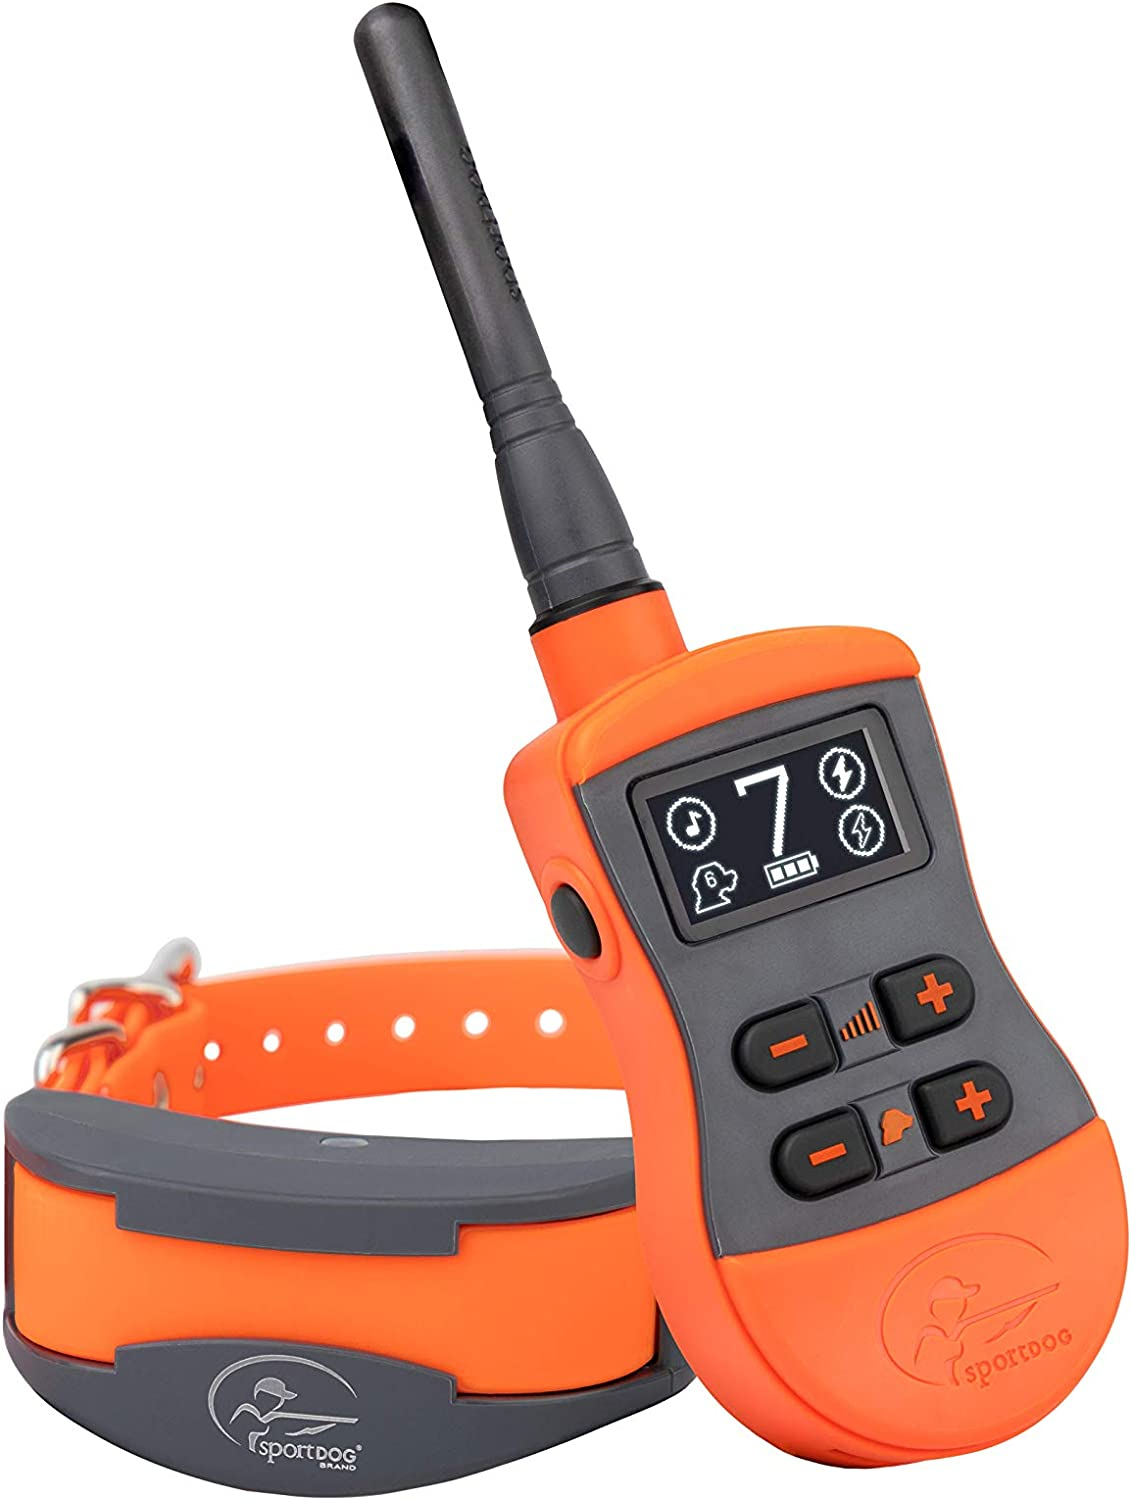 SportDOG Brand SportTrainer Remote Trainer- to Beauty products 55% OFF ¾ Up Mile Range